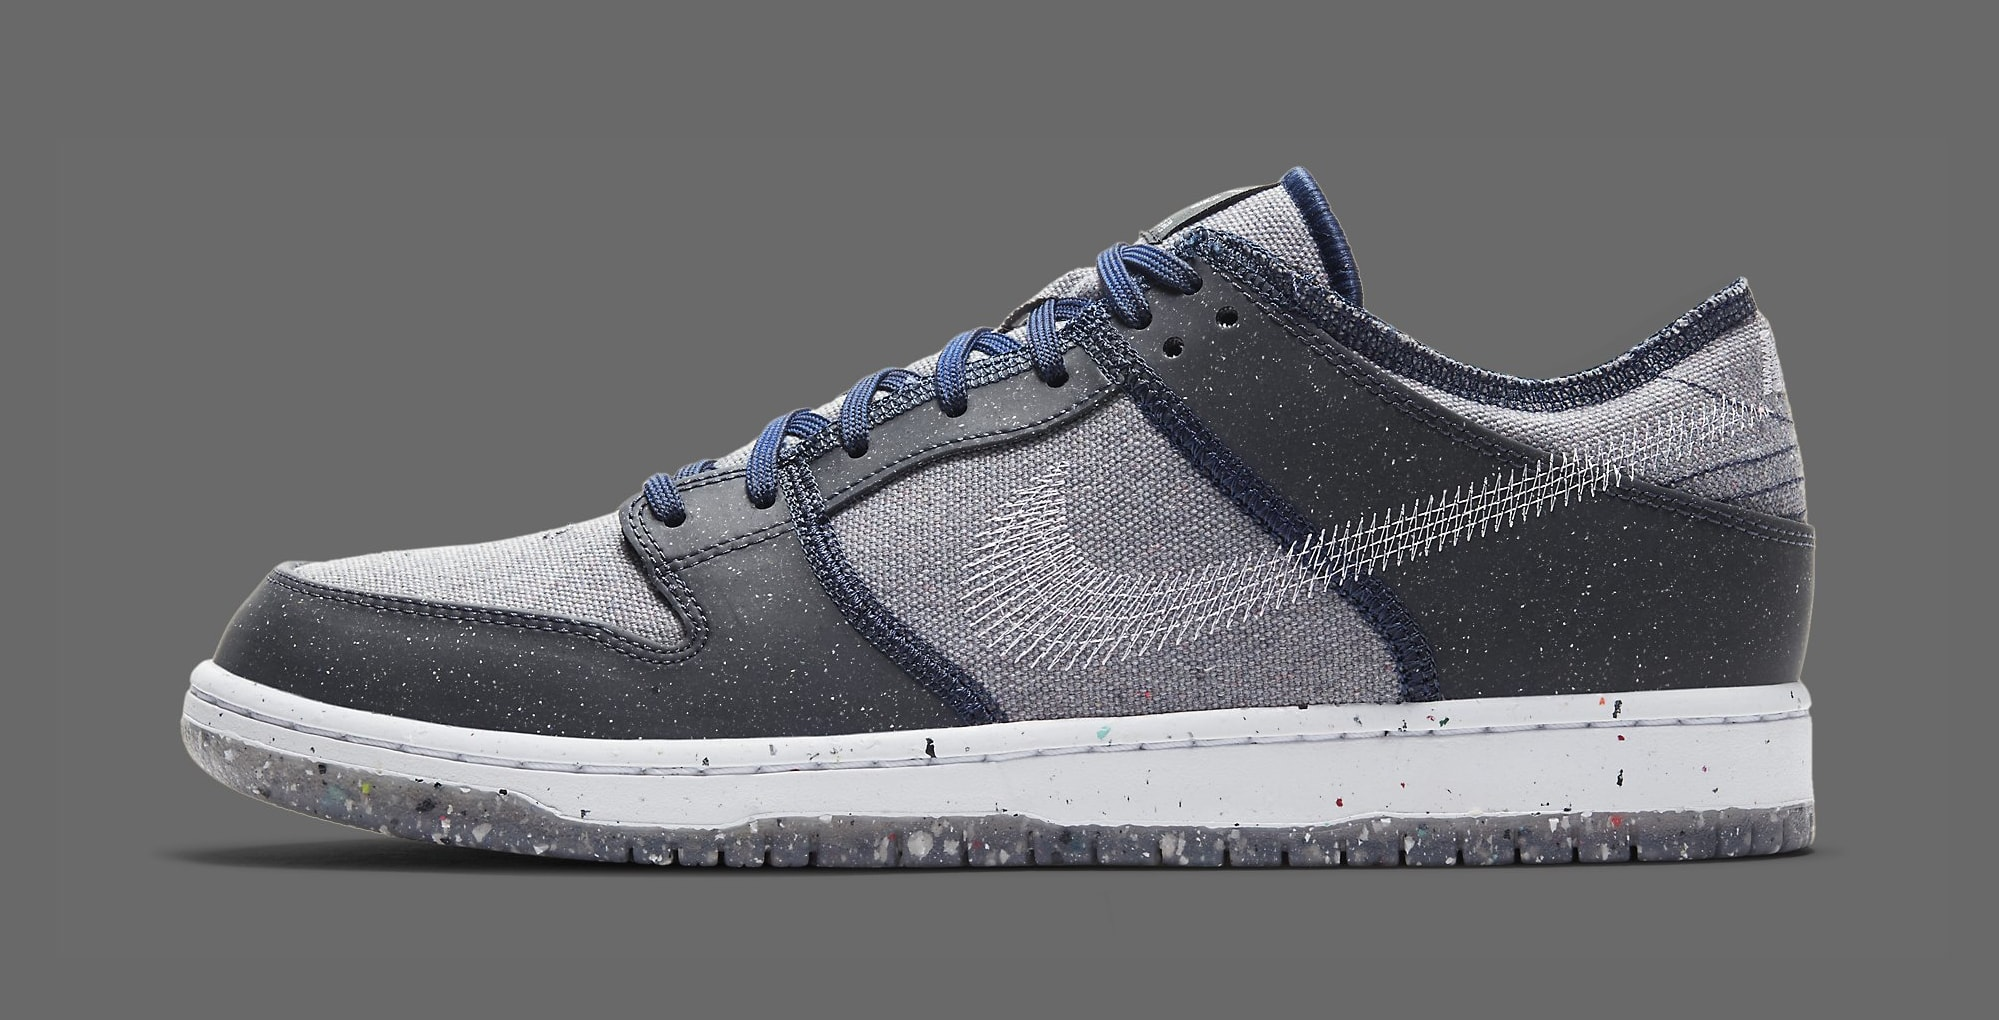 Nike SB Dunk Low 'Crater' CT2224-001 Lateral